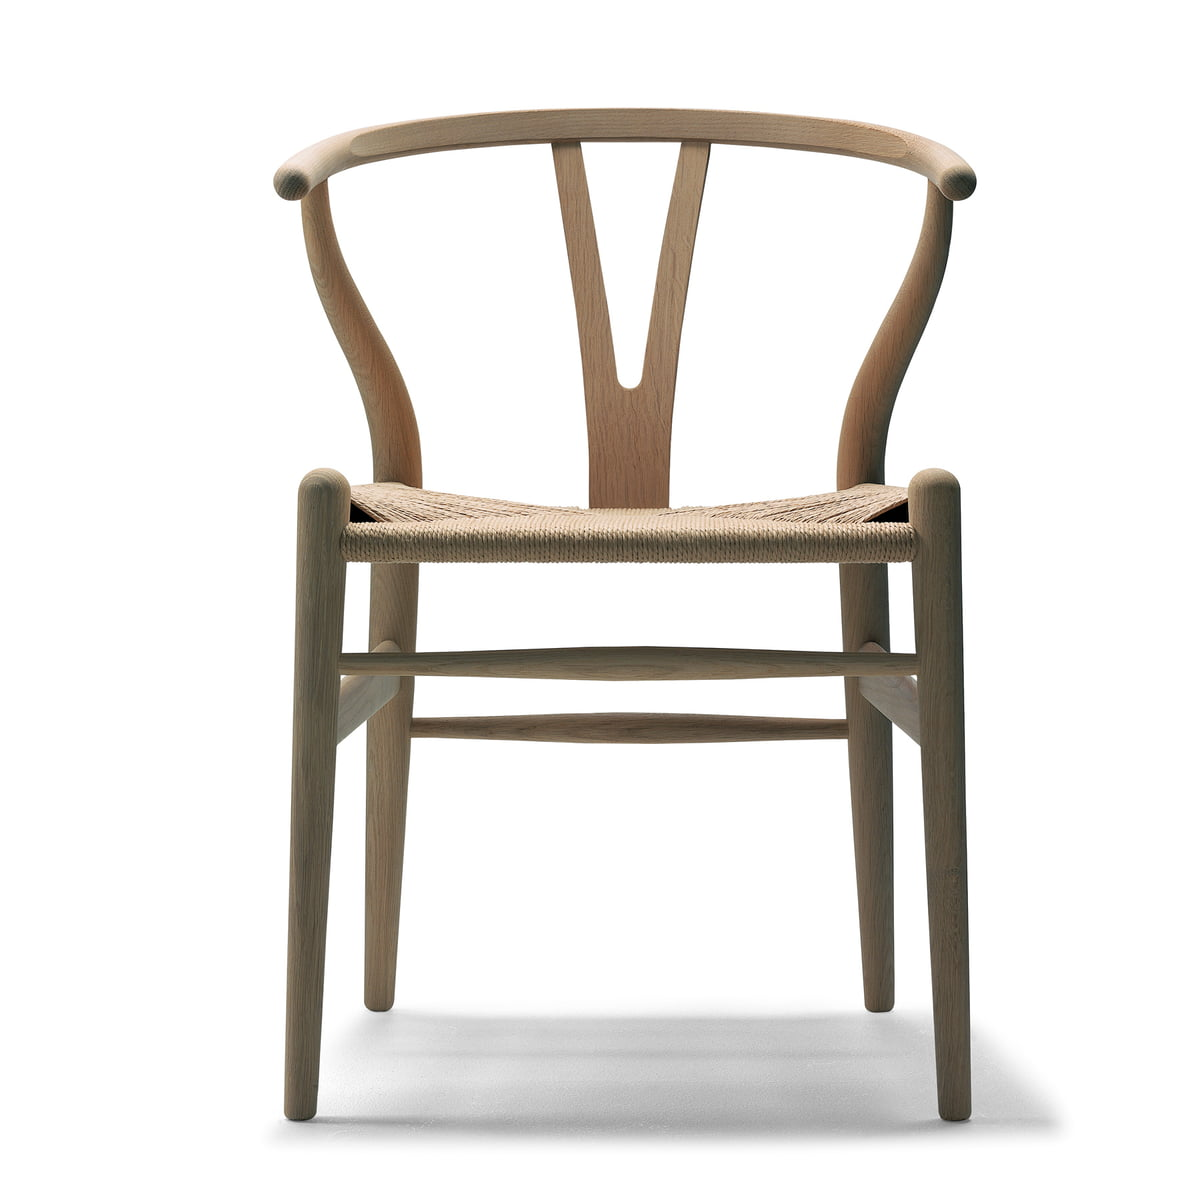 Wishbone Chair CH By Carl Hansen Connox - Hansen patio furniture